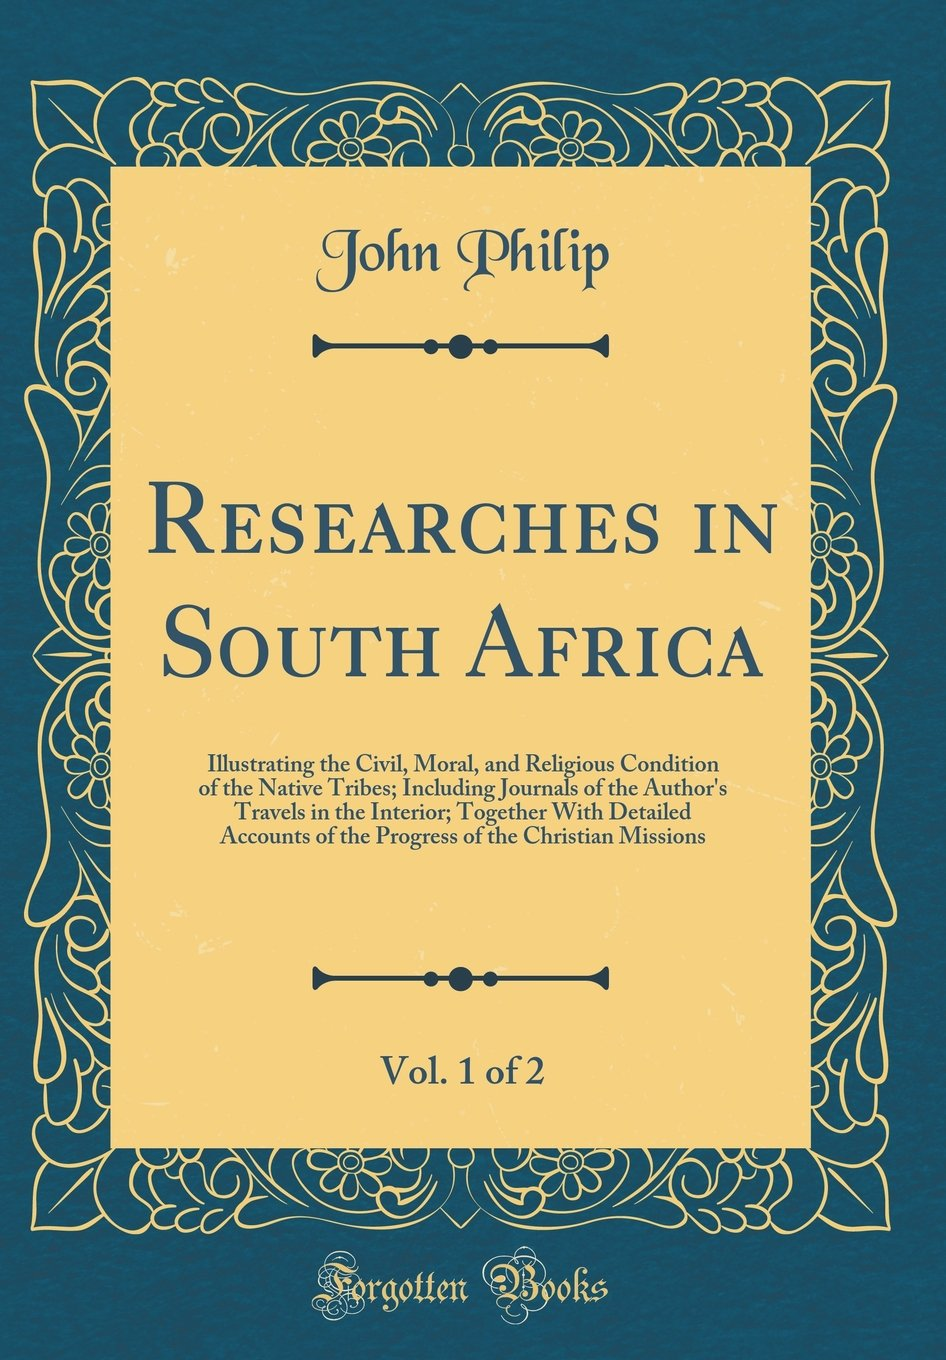 Read Online Researches in South Africa, Vol. 1 of 2: Illustrating the Civil, Moral, and Religious Condition of the Native Tribes; Including Journals of the ... of the Progress of the Christian Missions pdf